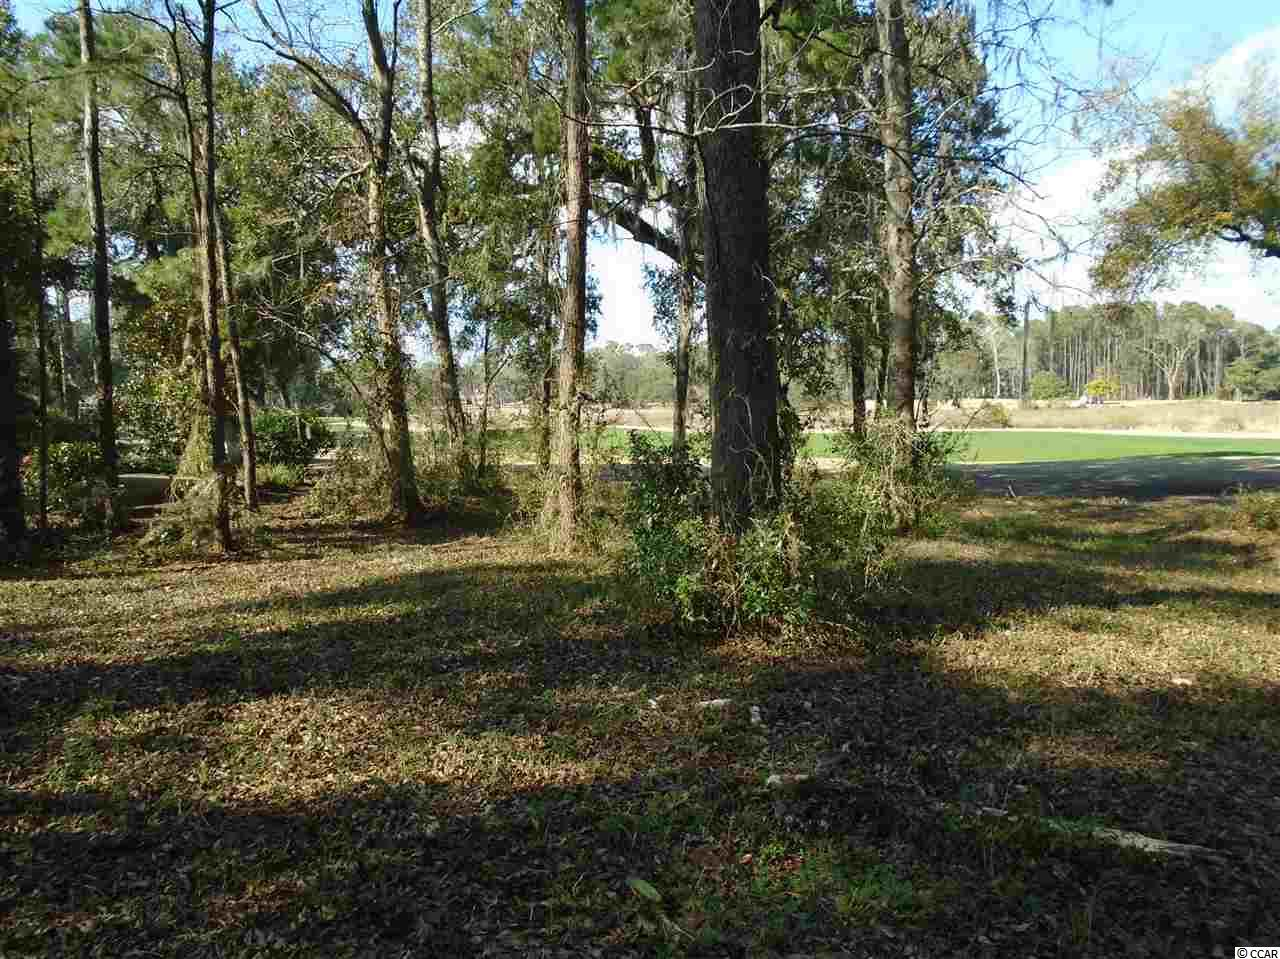 Beautiful wooded homesite--elevated with magnificent views of fairway and salt marsh with a distant view of historic old Pawleys Island. Measurements are: 74x181x79x169 (.399 acres). Slither of wetlands on right back corner near golf course and would not impede on building envelope. Pawleys Plantation is a gated community on the east side of Ocean Hwy. 17 and the golf course is a Jack Nicklaus Signature. Plot plan is in associated docs. No time to build and no specific builder. Shopping, dining, the beach and many other golf courses are nearby. The historic city of Charleston is 90 minutes to the south and Myrtle Beach is 45 minutes north.